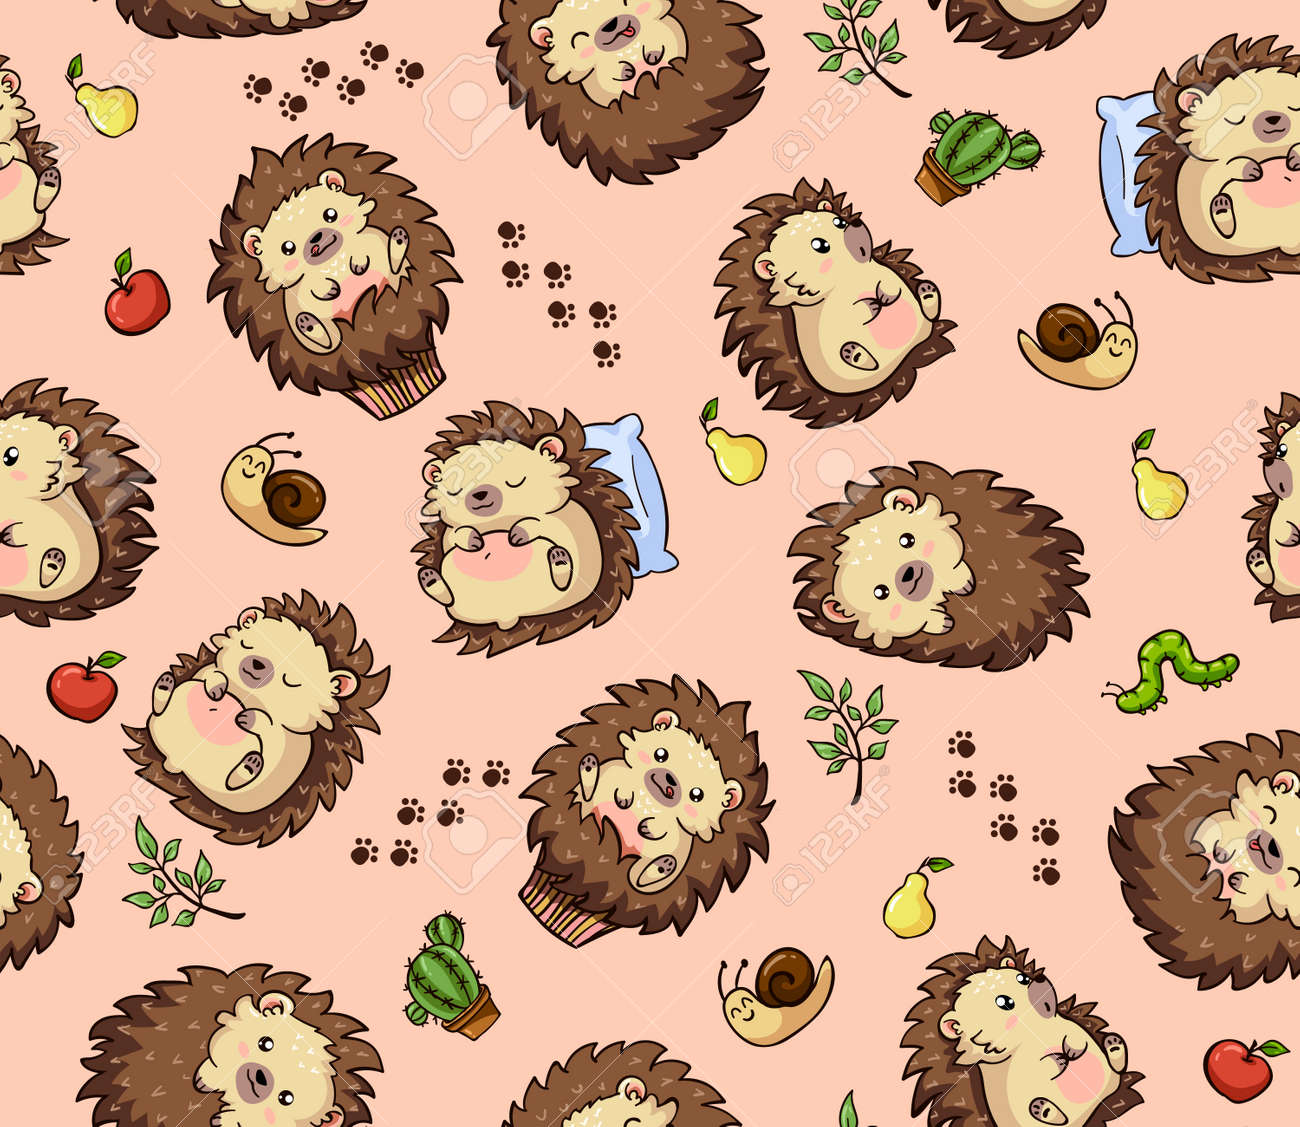 Cartoon Cute Seamless Pattern With Hedgehogs On Pastel Color